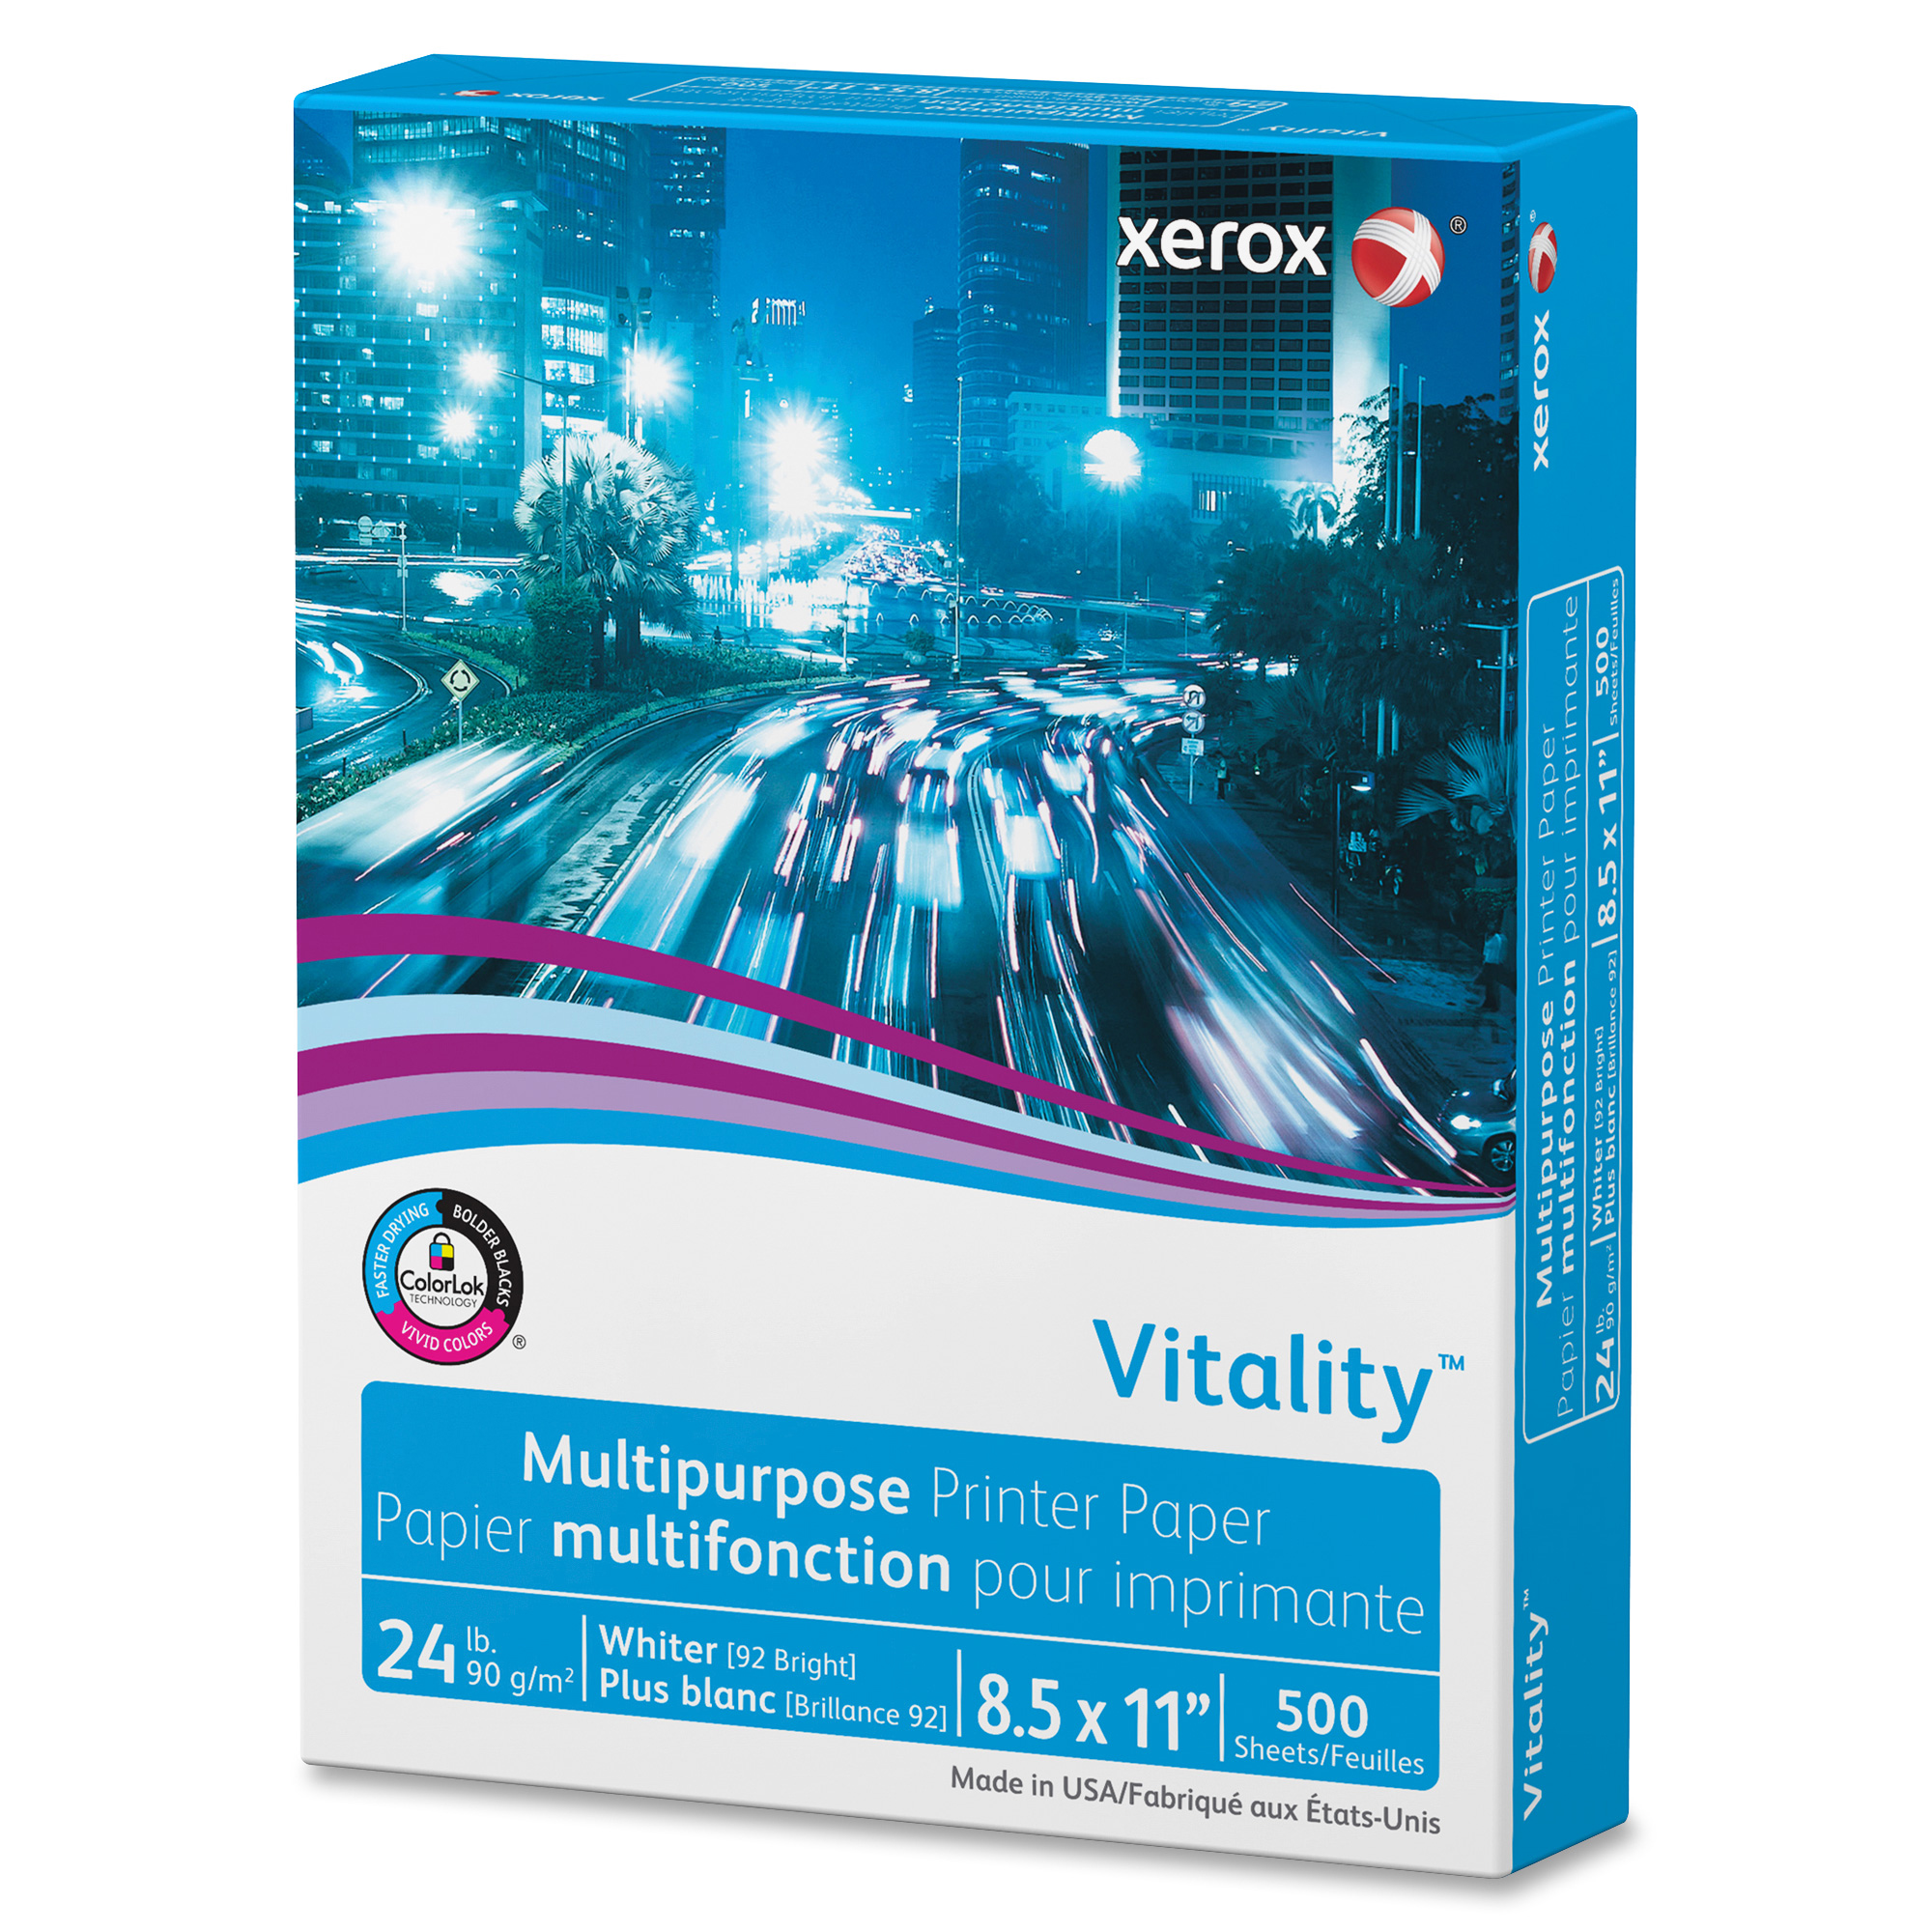 Xerox 3R02531 Vitality Multipurpose Printer Paper